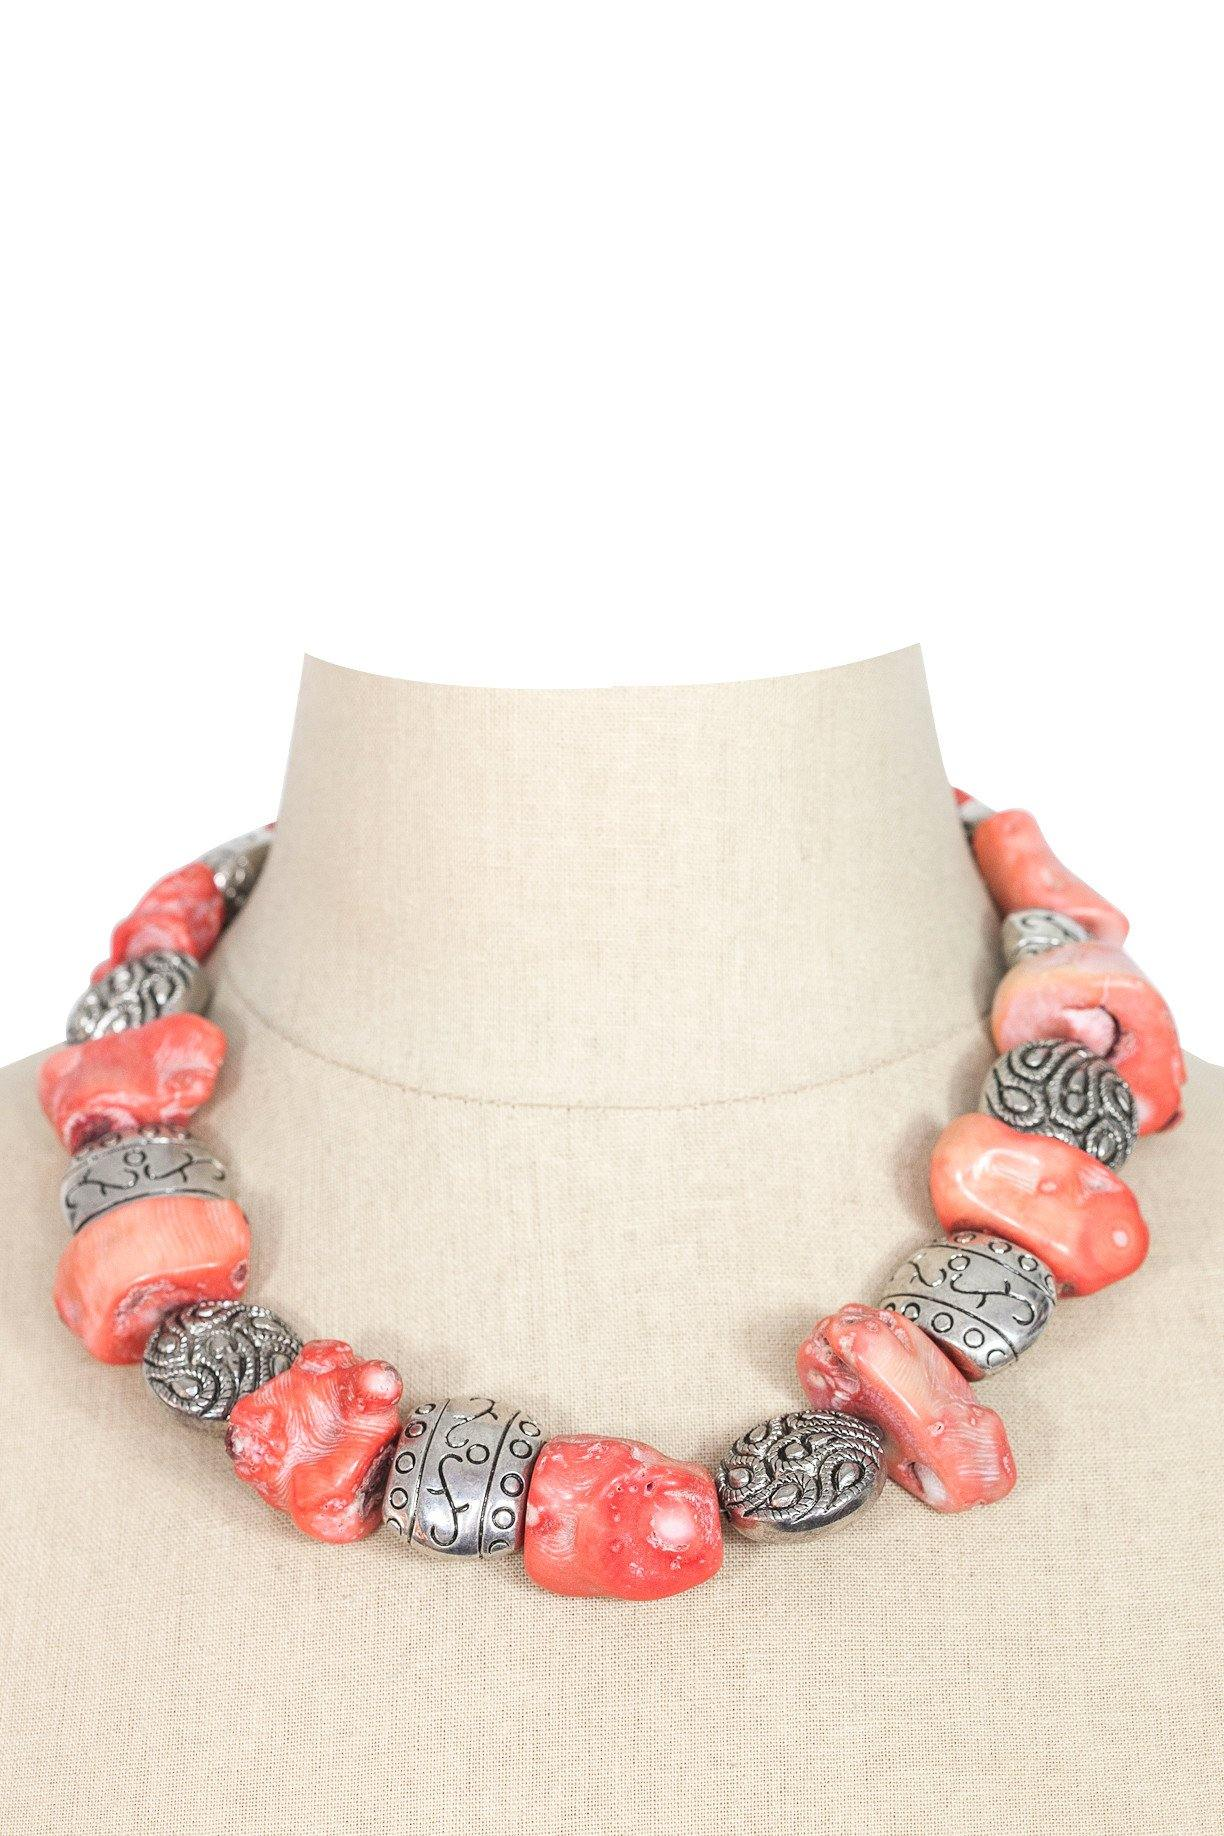 80's__Vintage__Chunky Coral Necklace